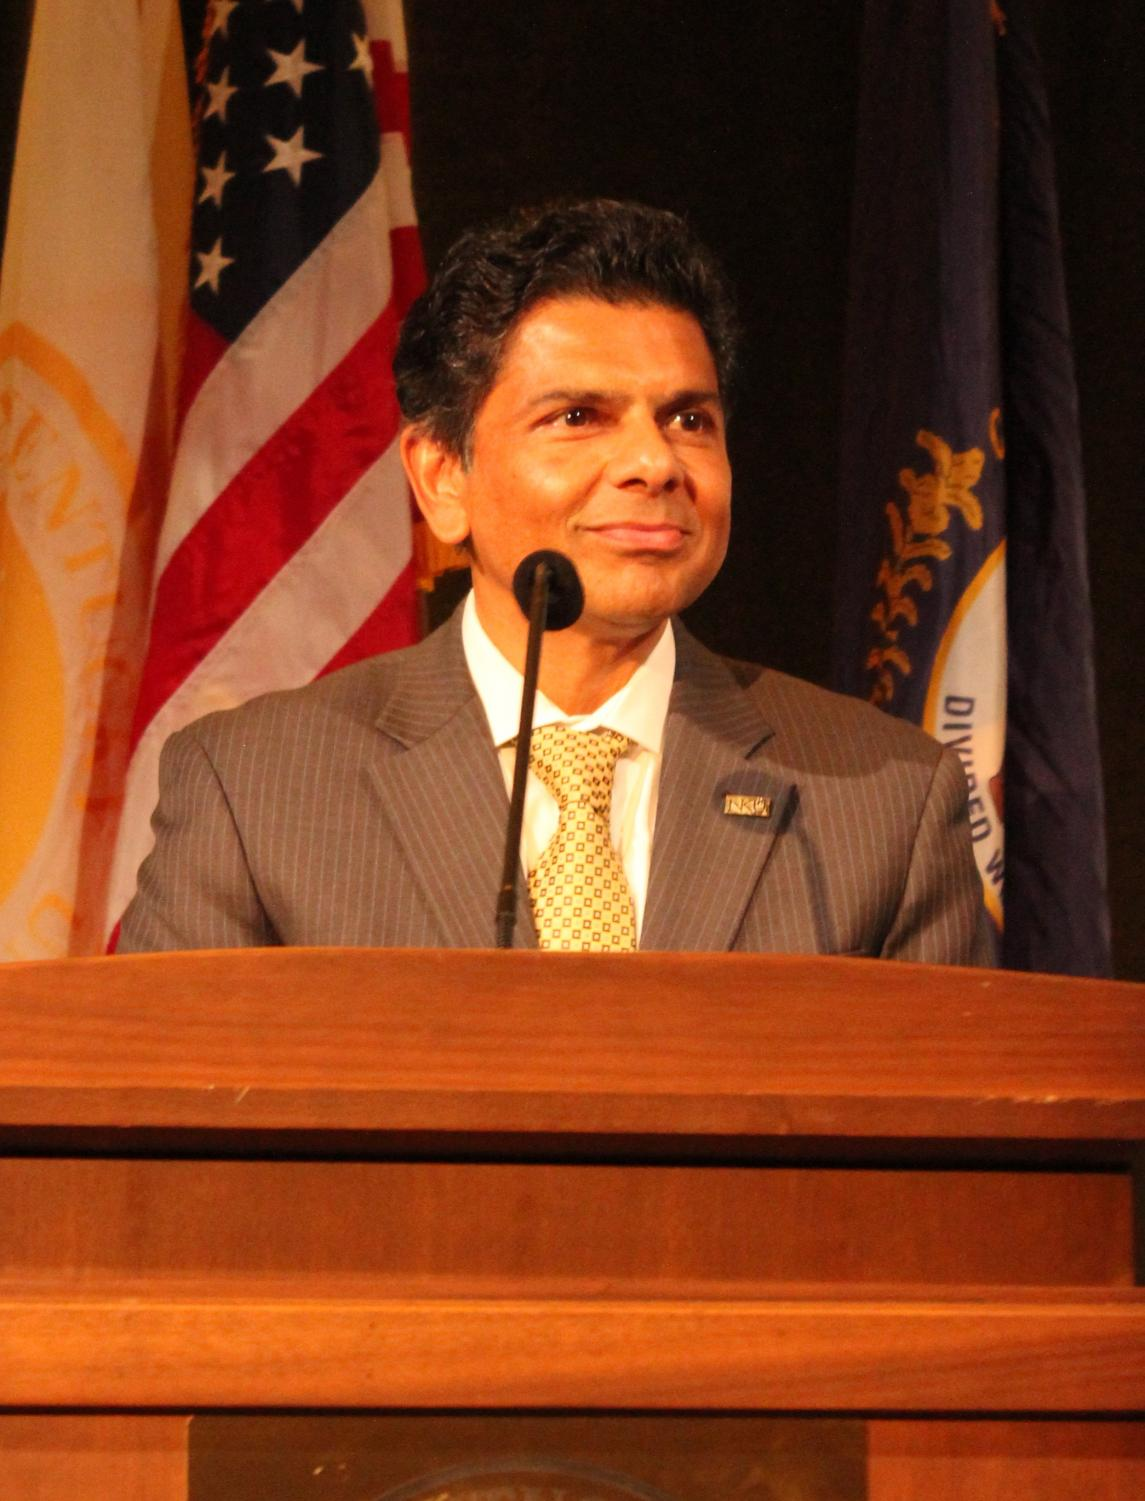 Dr. Ashish Vaidya, NKU's sixth president, addressed students and administrators in SU ballroom on Thursday.